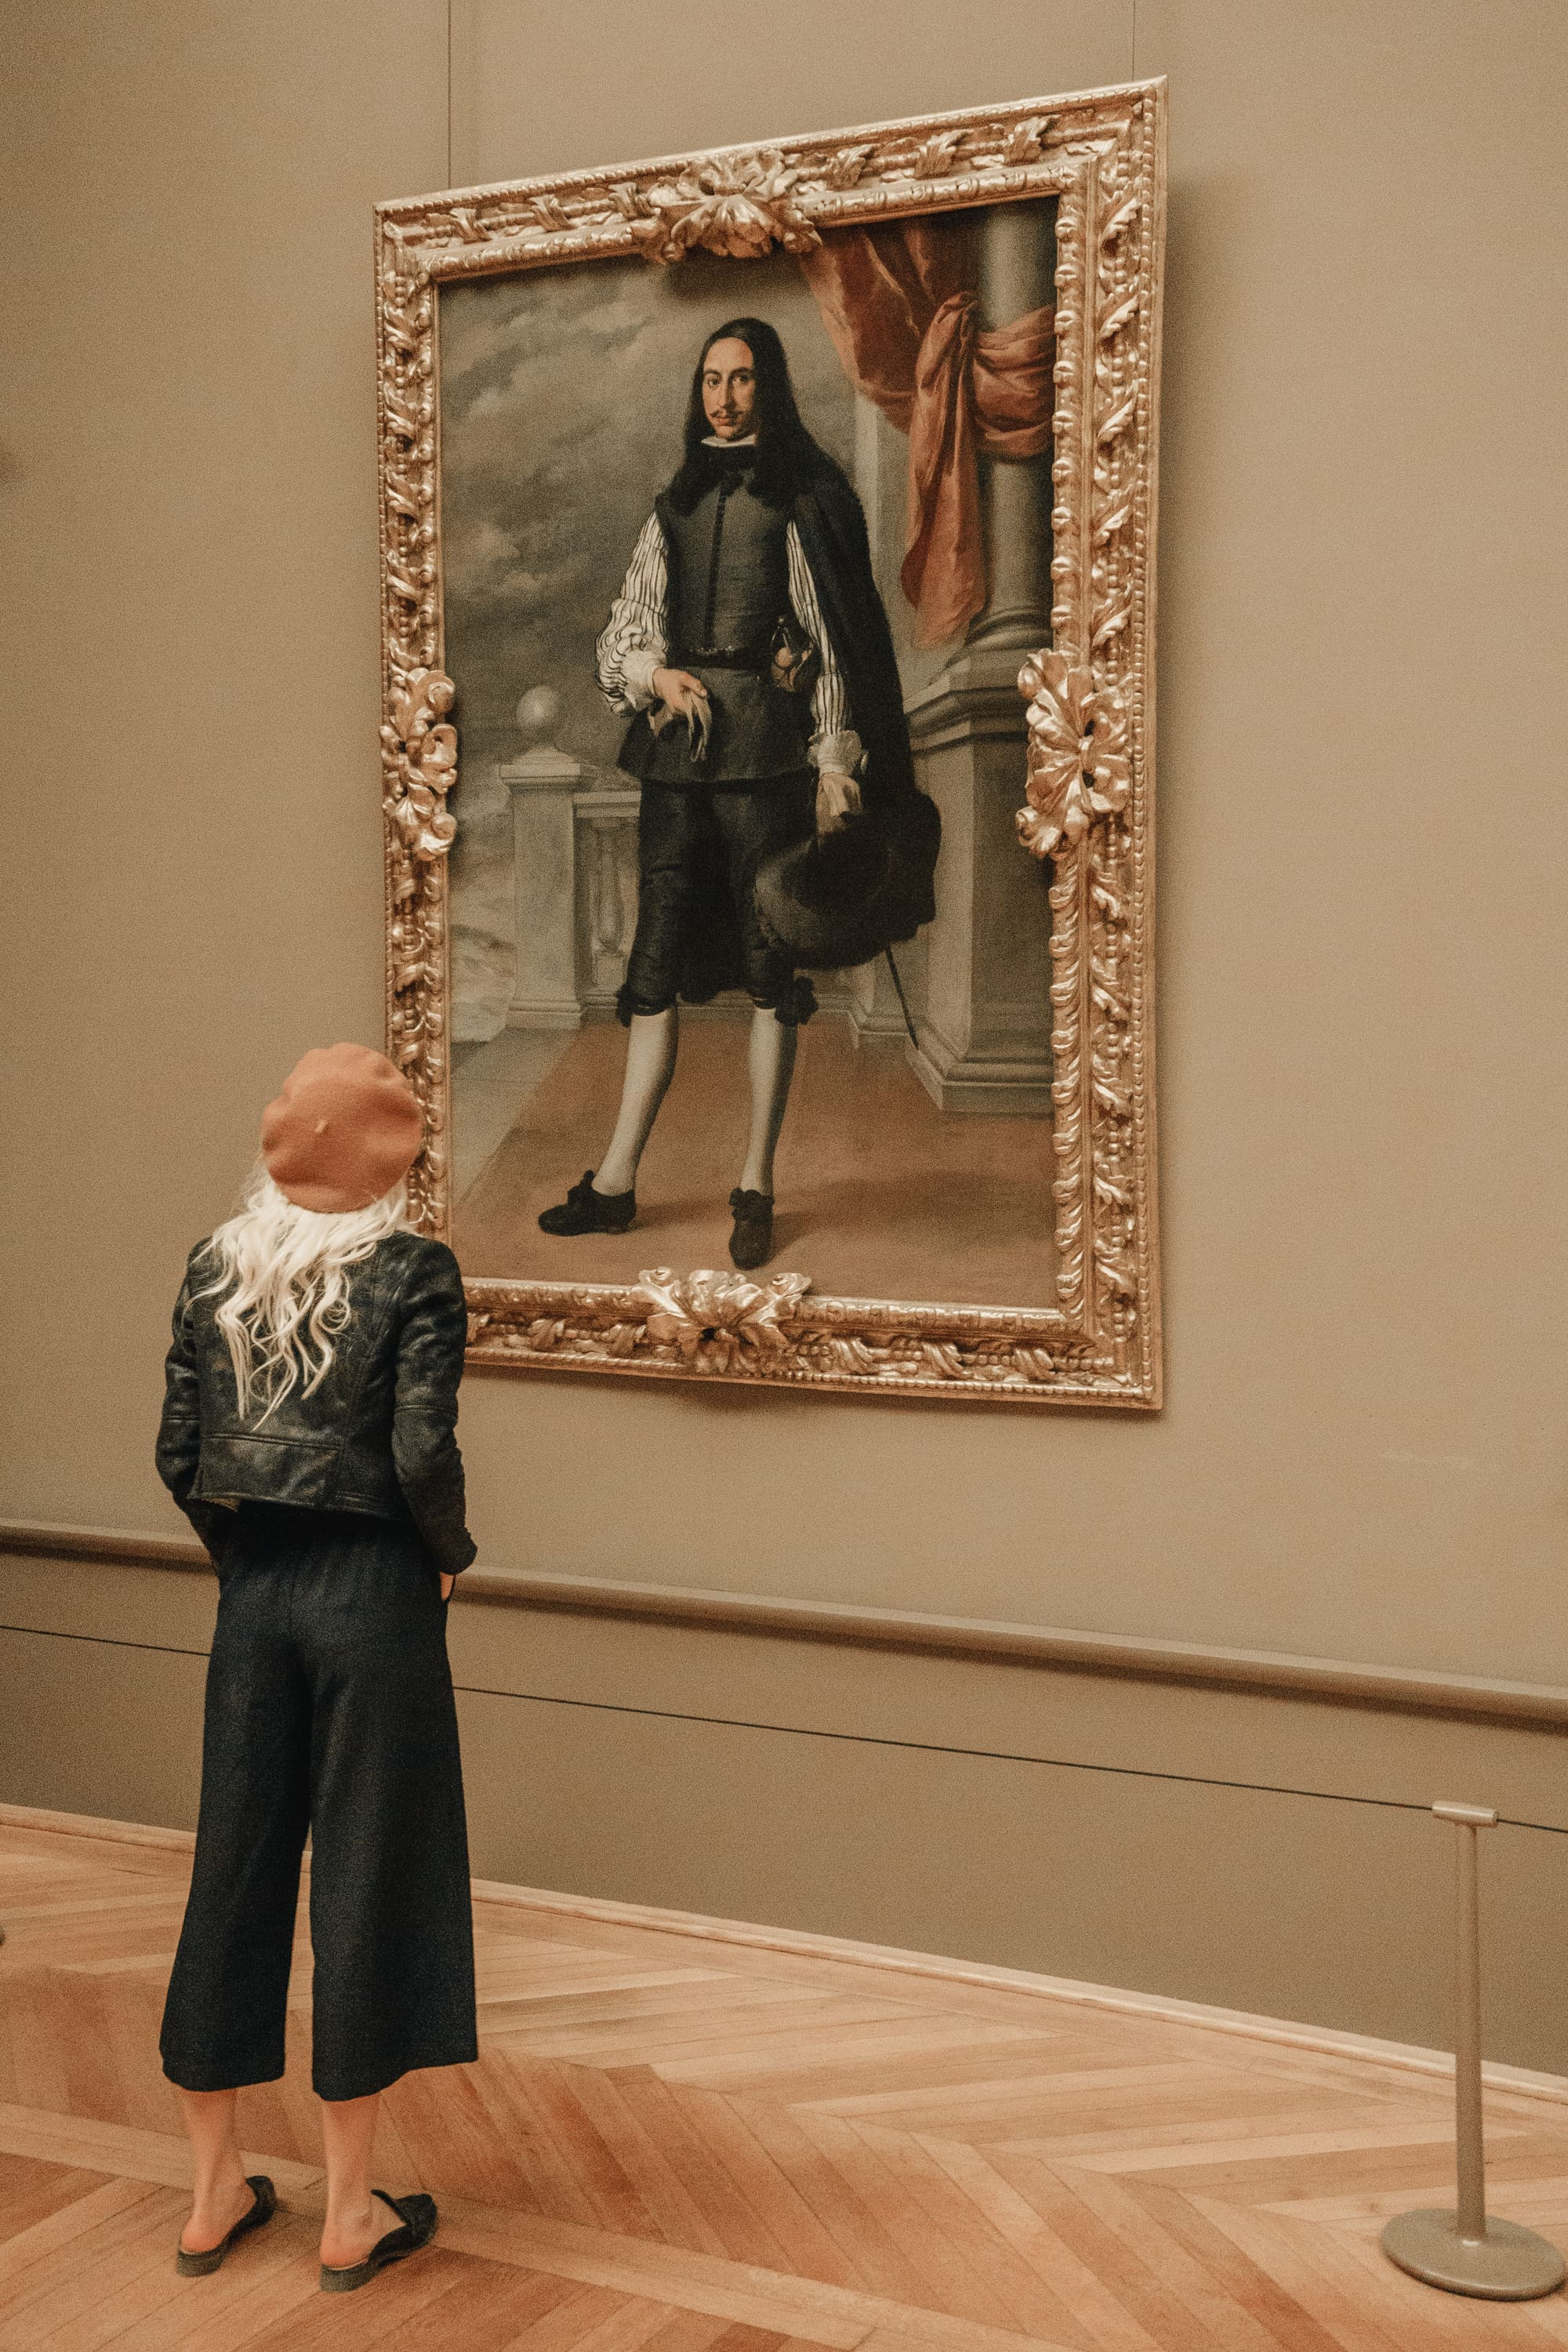 Sarah Loven looks at painting at the Louvre